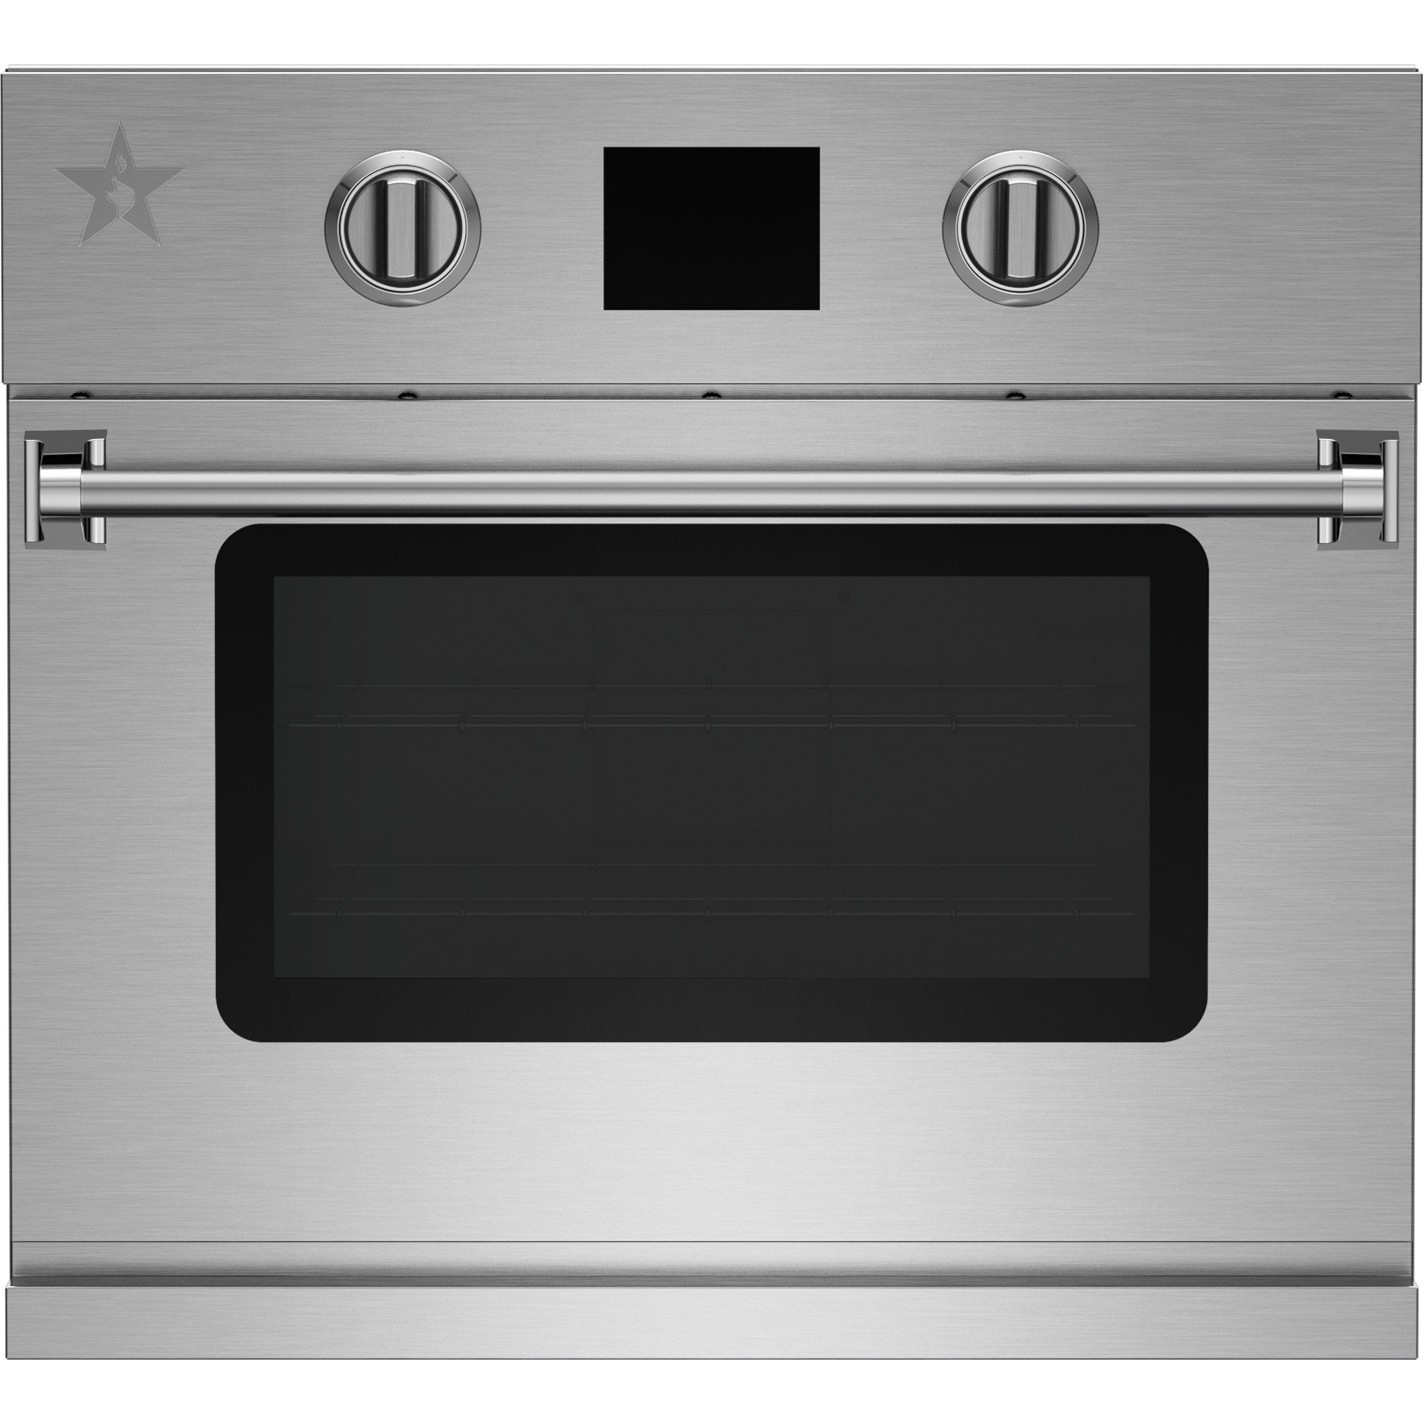 Bsewo30ecdd bluestar 30 single electric wall oven for Electric moving wall pictures